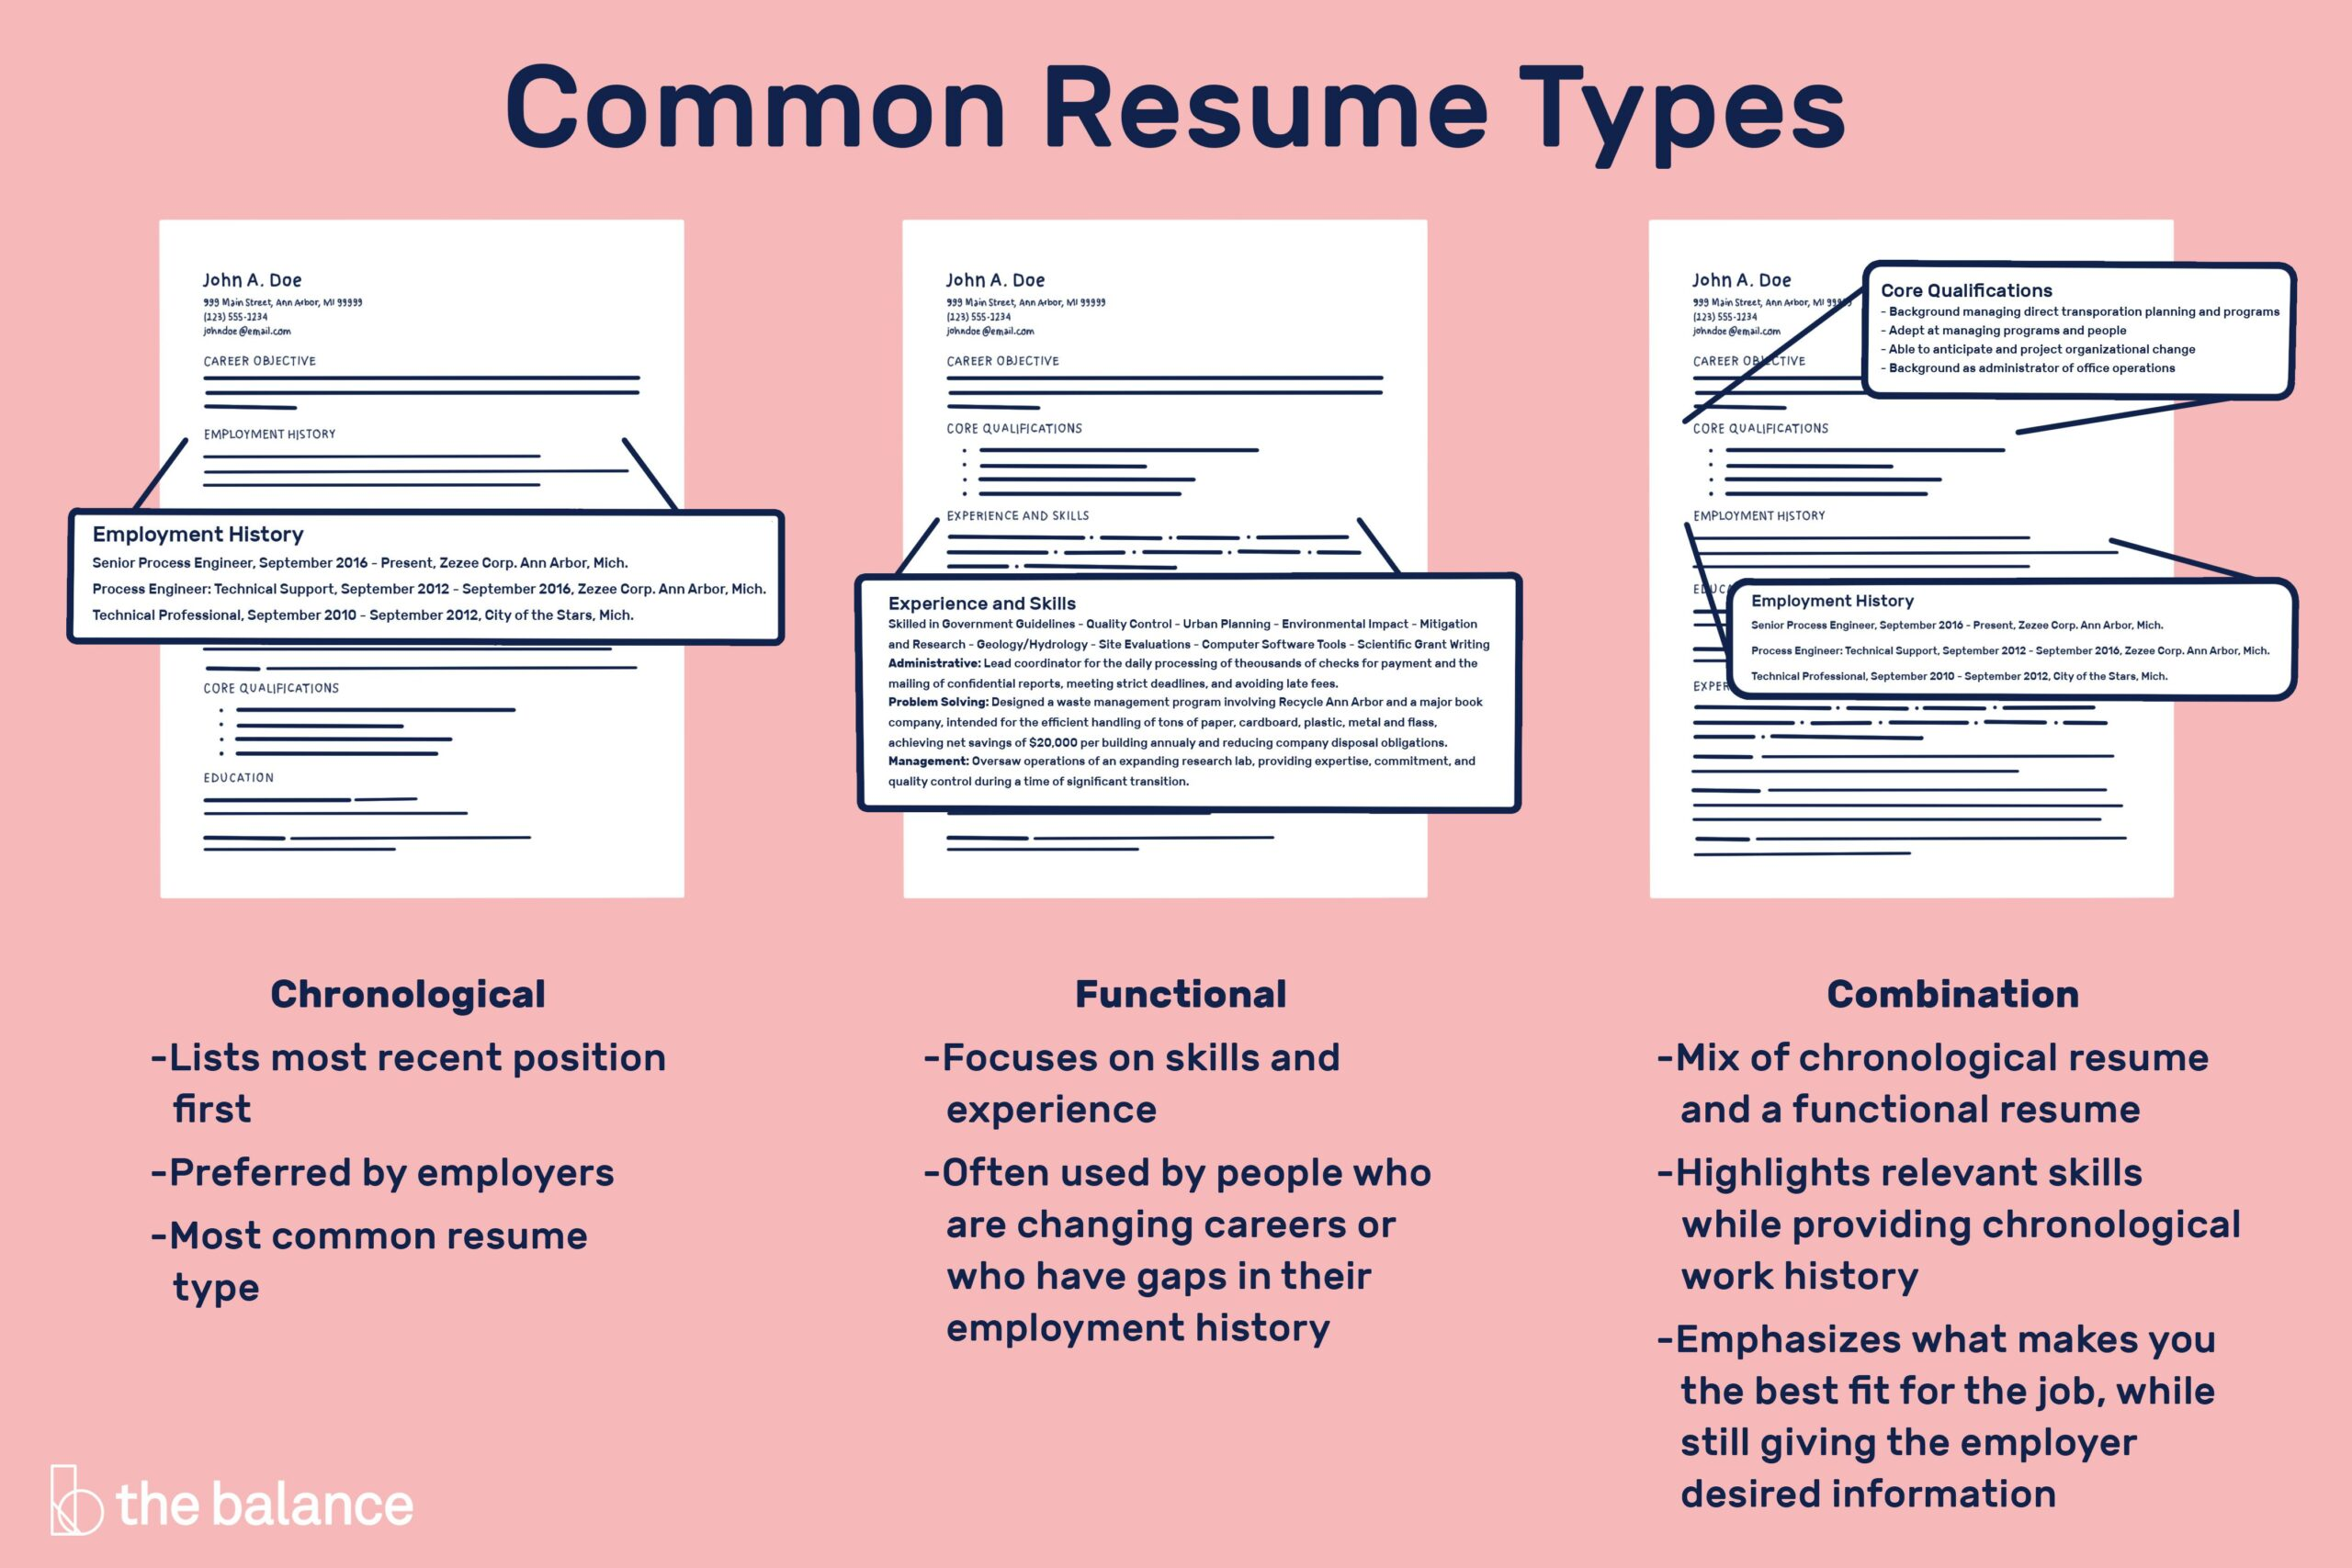 different resume types with one job history chronological functional combination template Resume Resume With One Job History